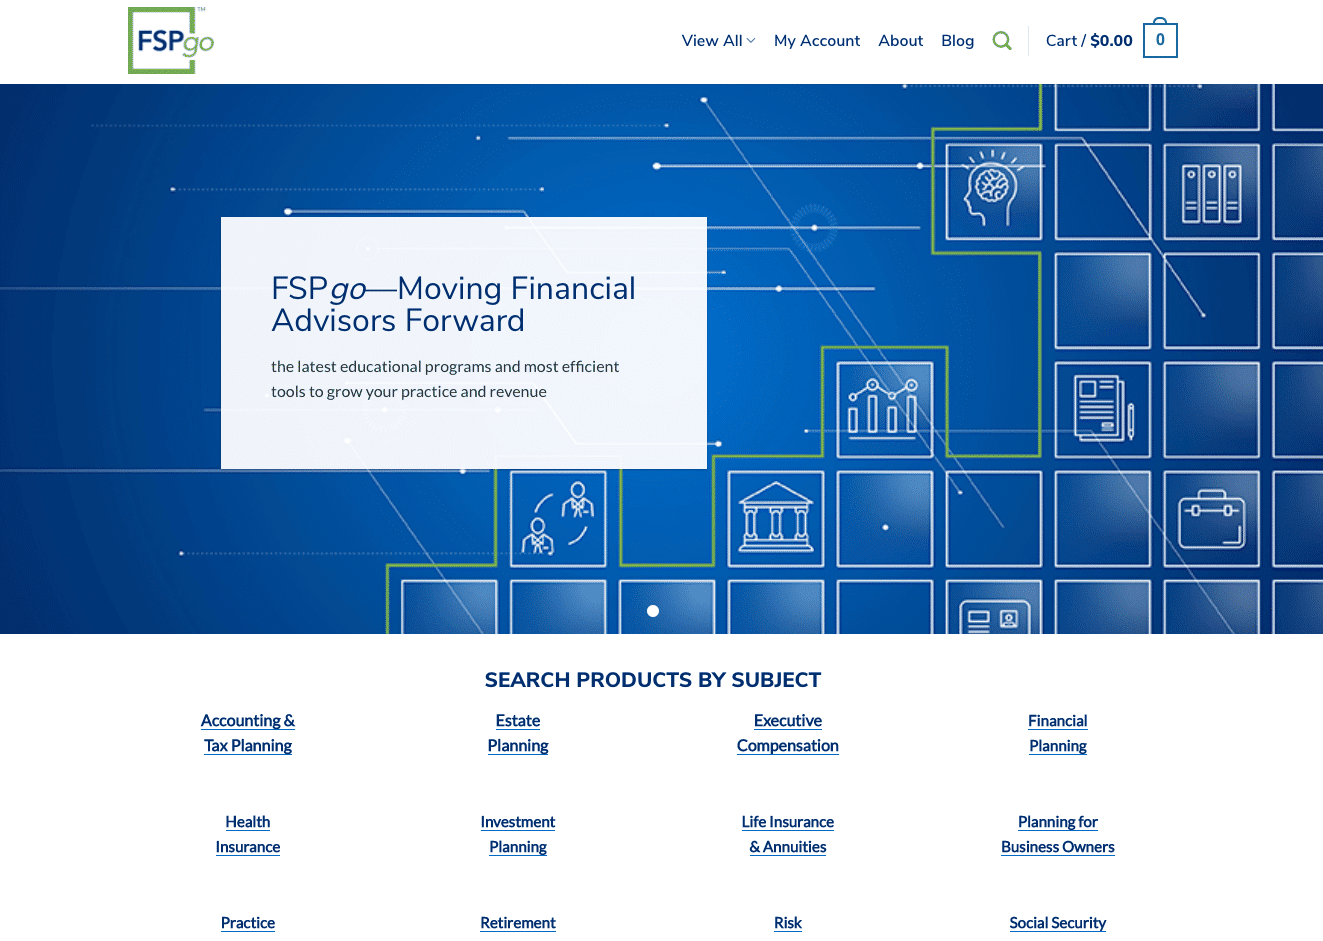 Screenshot of Financial Service Professionals Access Educational Resources Through New Member Site